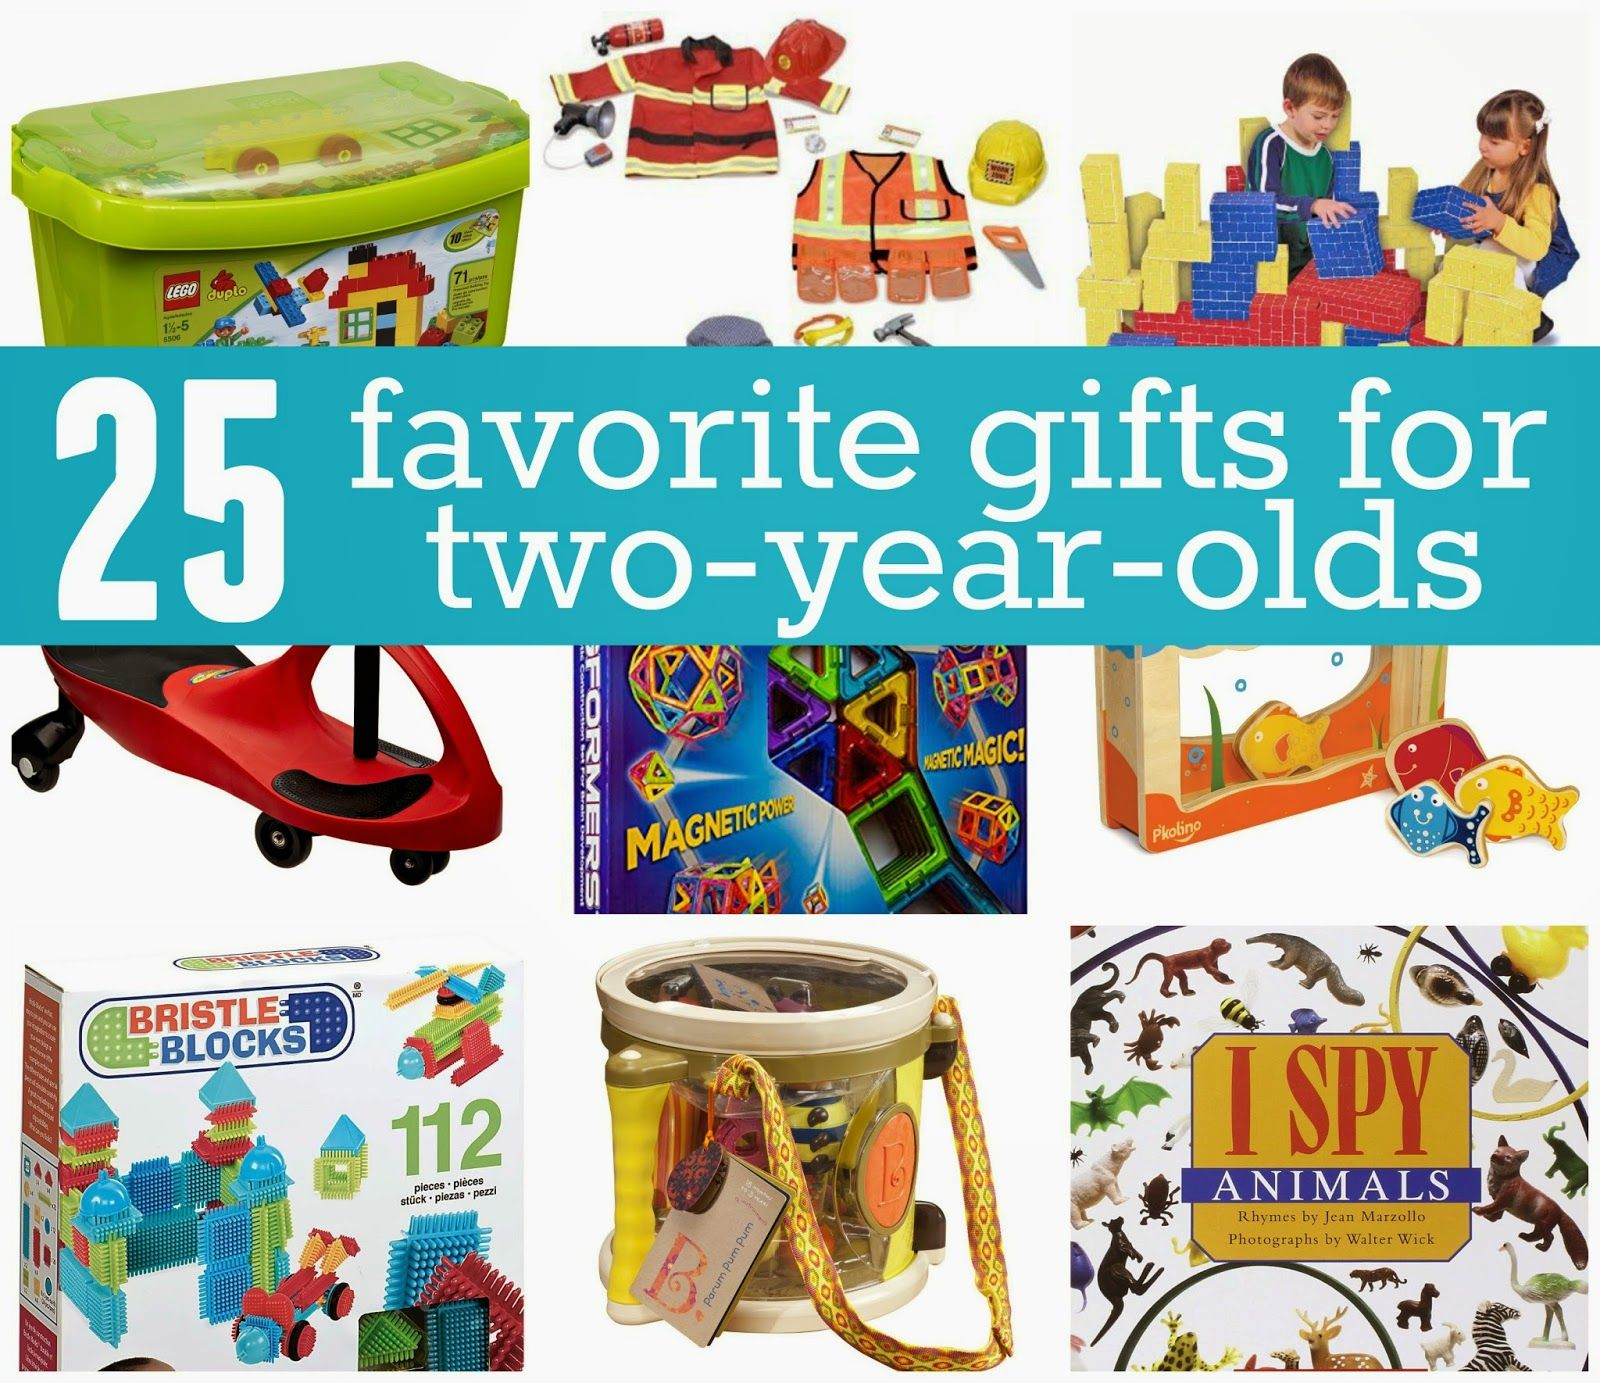 Favorite Gifts for 2 Year Olds